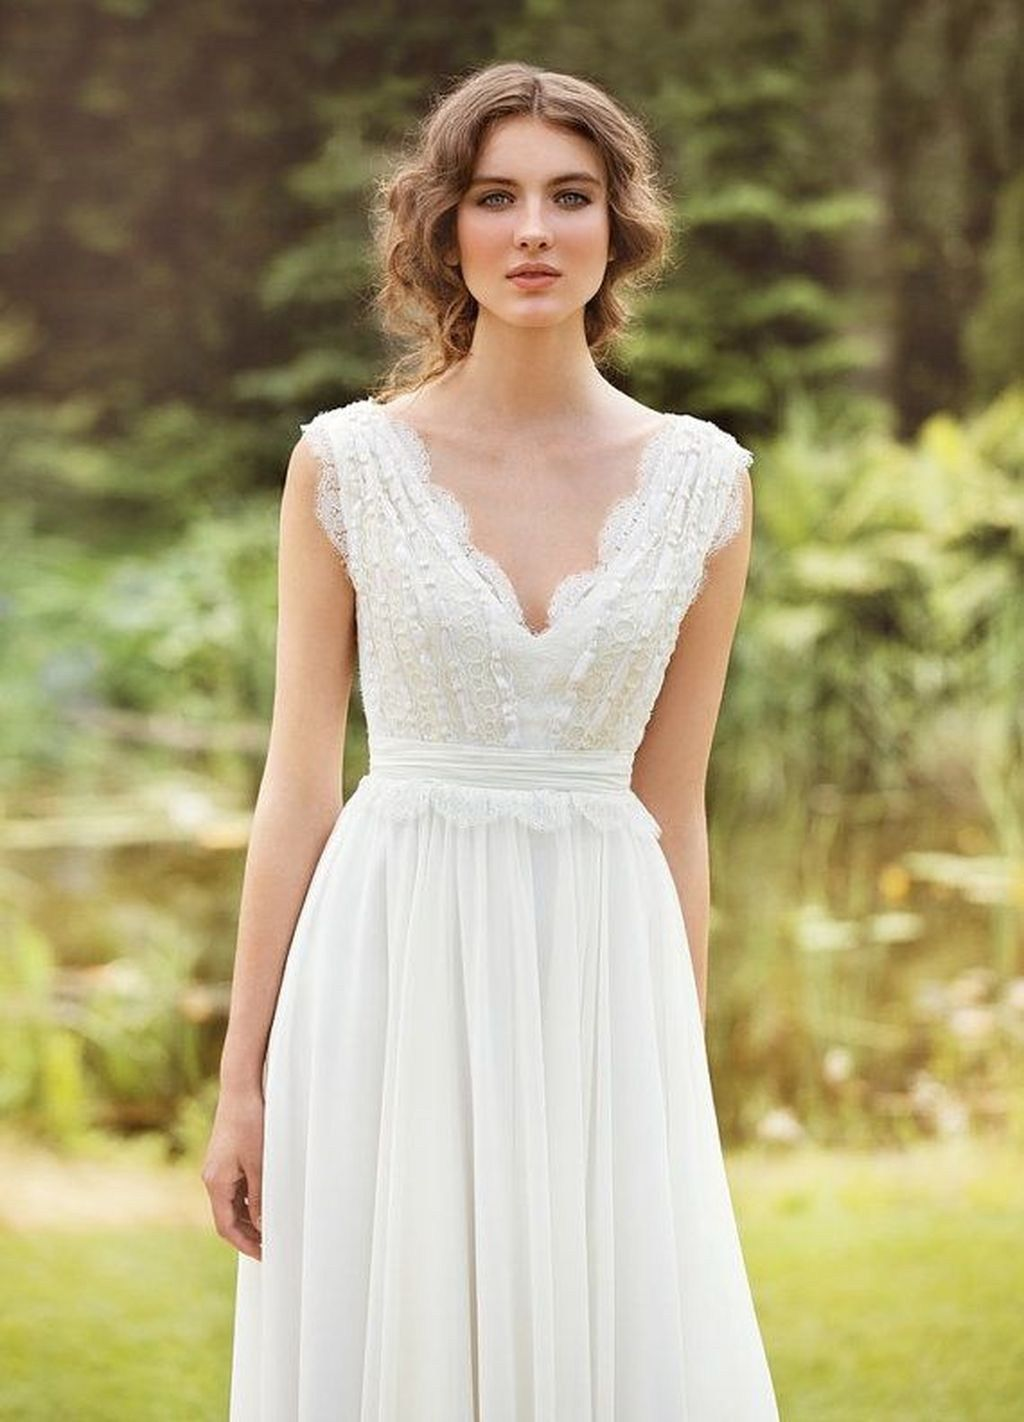 adorable bohemian wedding dress ideas to makes you look stunning